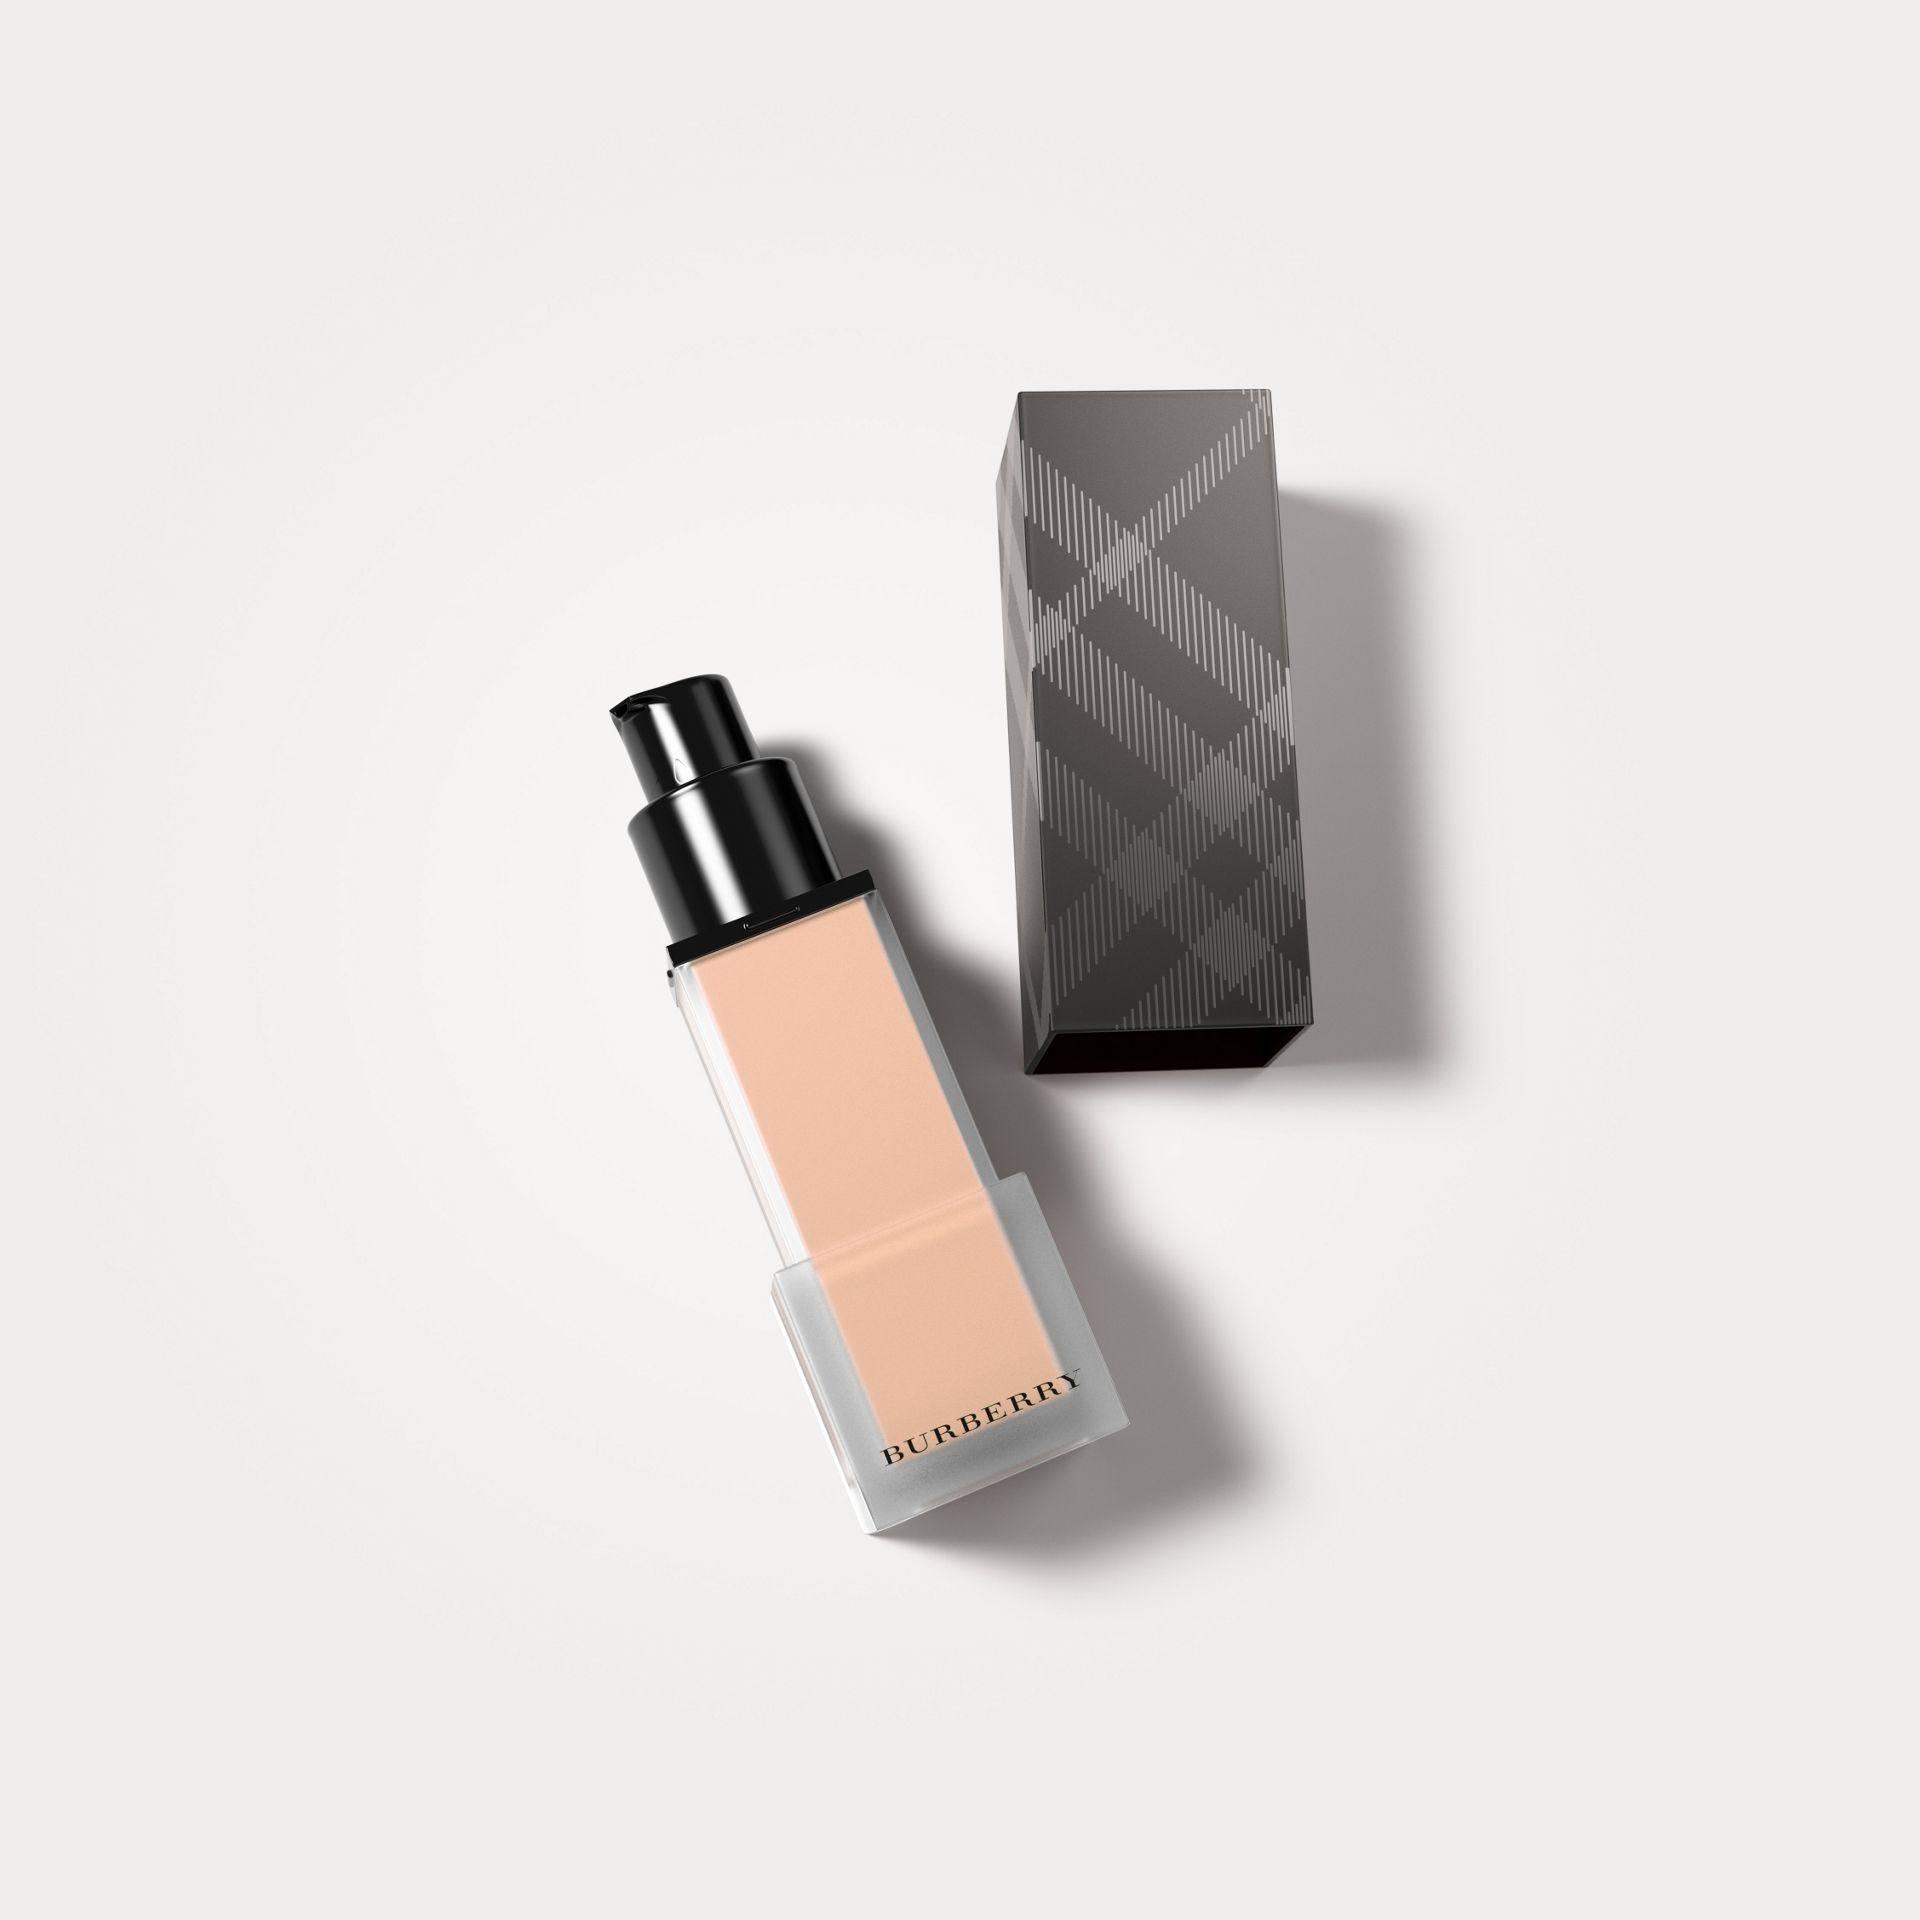 Rosy nude 31 Burberry Cashmere Sunscreen SPF 20 – Rosy Nude No.31 - gallery image 1